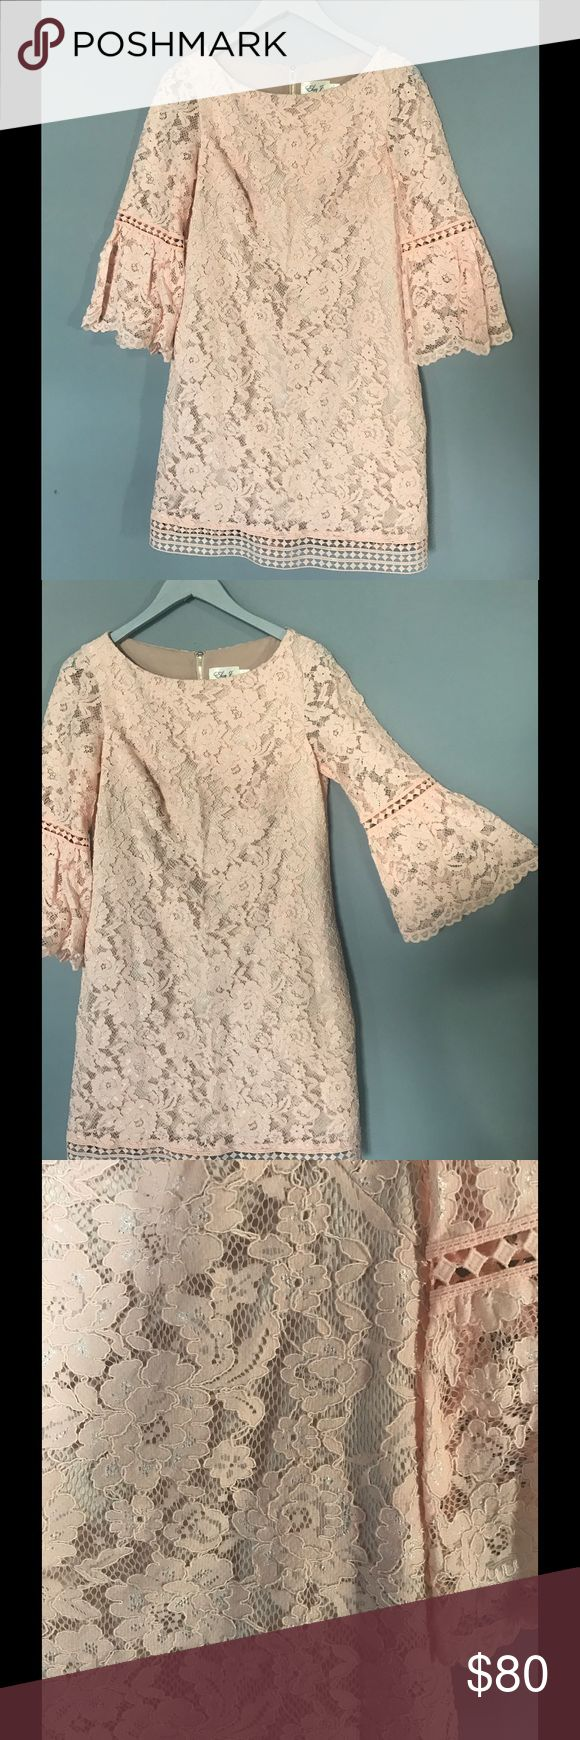 Eliza J Light Pink Lace Dress ONLY Worn 1 Time || Bell Sleeves || Formal Dress || Thick Fabric, but Not Hot || Satin Sewn in Slip || Lace Sleeves keep it cool enough to wear in spring or summer Eliza J Dresses Long Sleeve